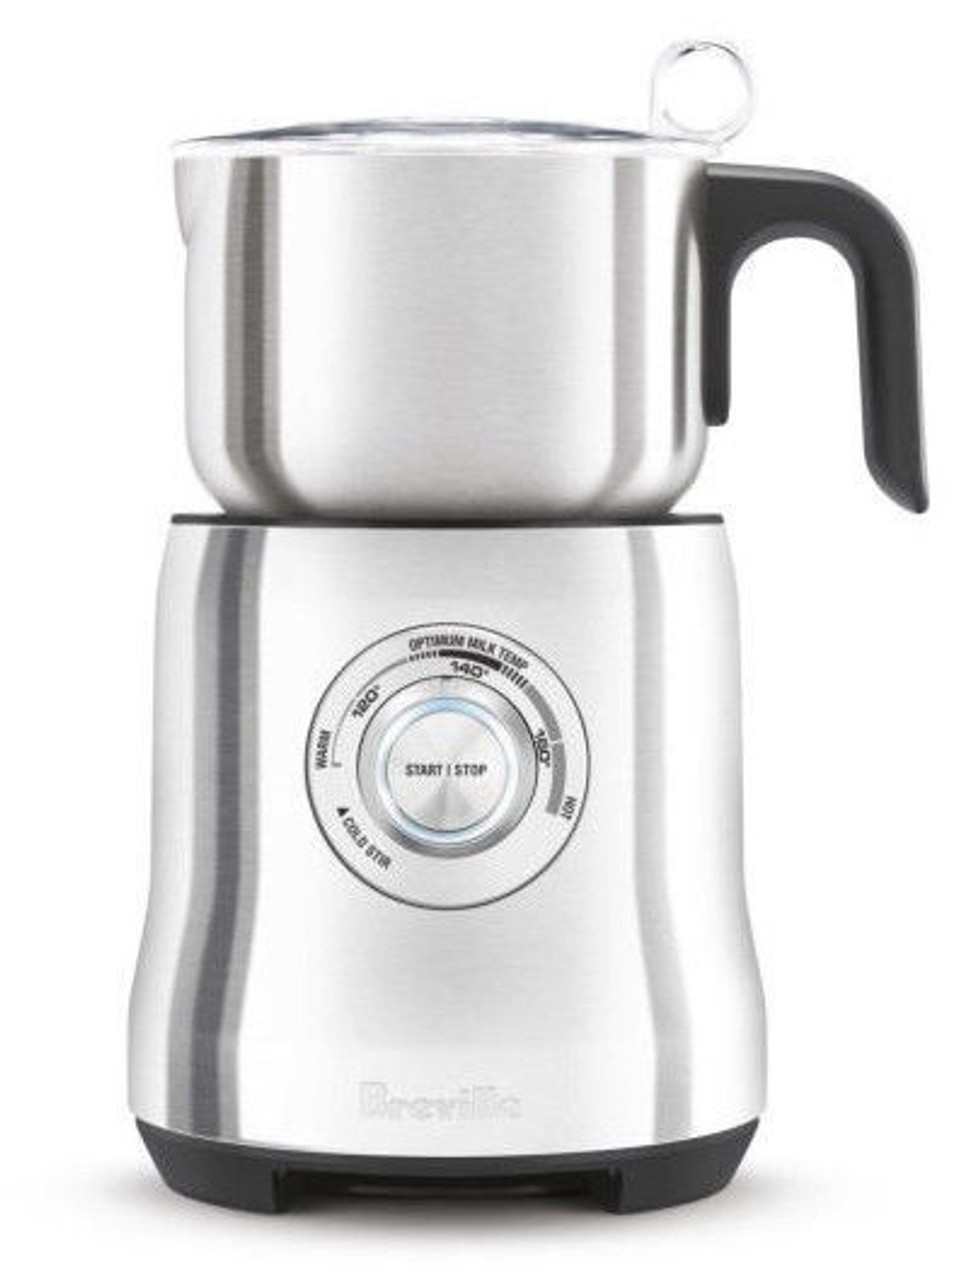 Breville BMF600BSS the Milk Café™ Milk Frother - RRP $169.95